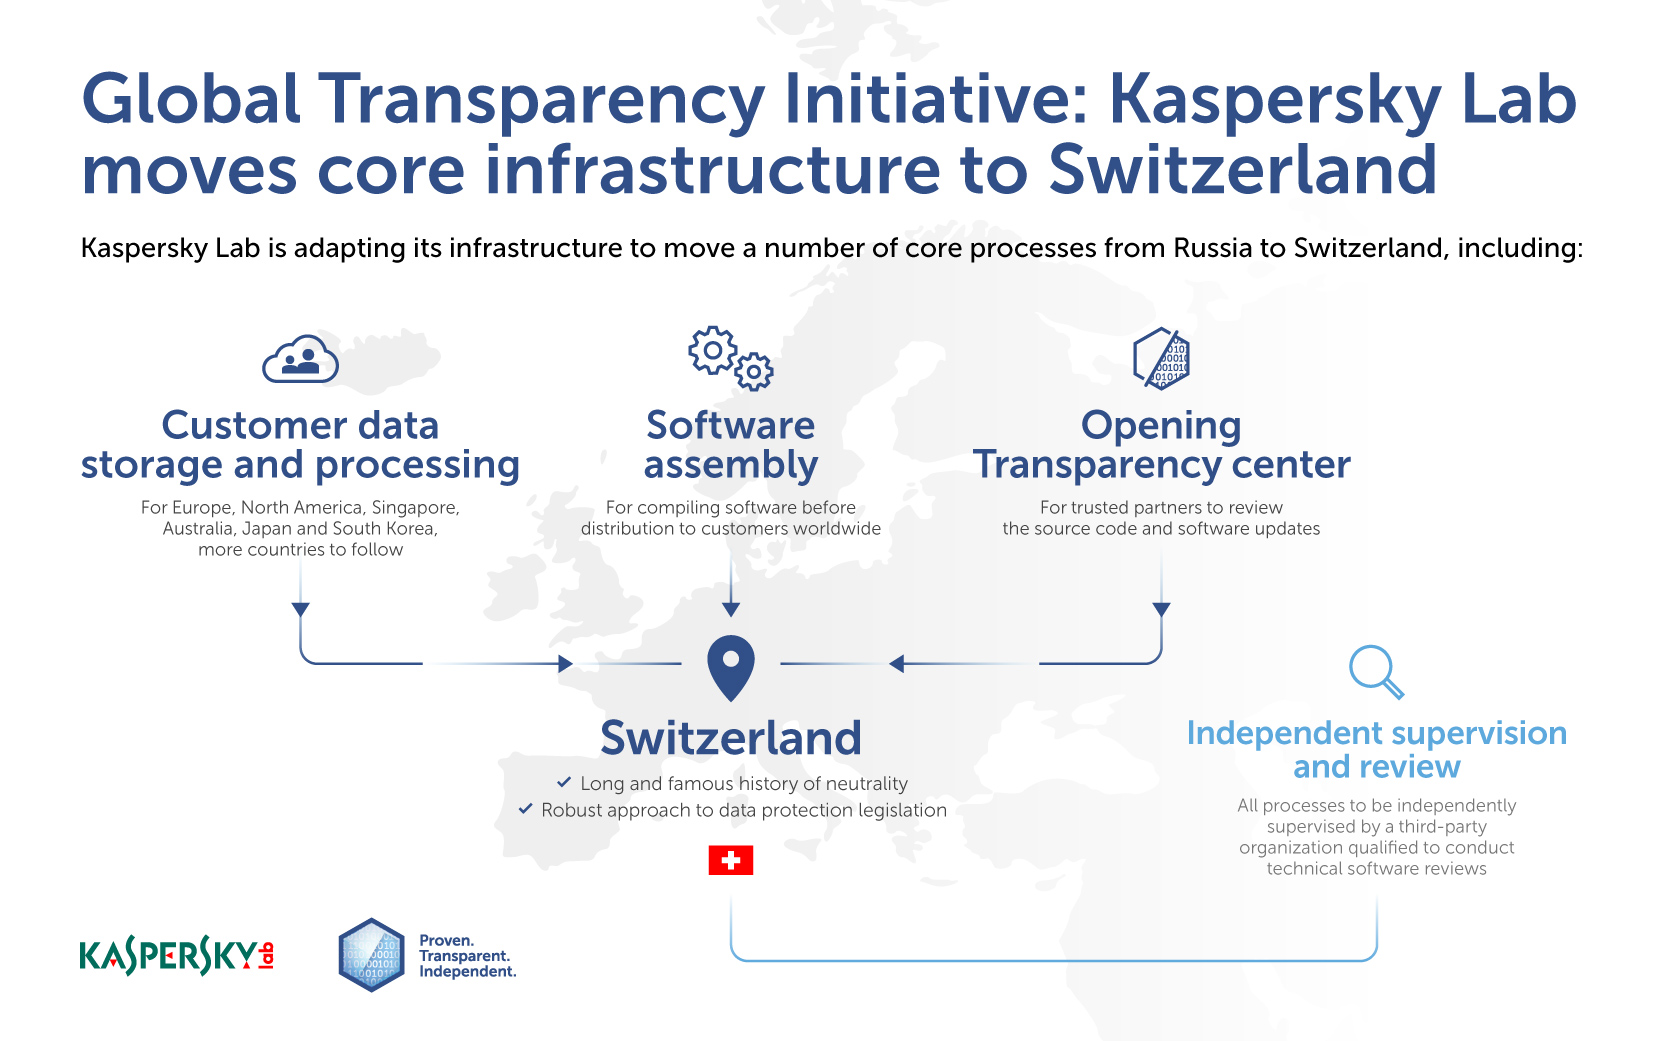 Kaspersky_Lab moves core infrastructure to Switzerland